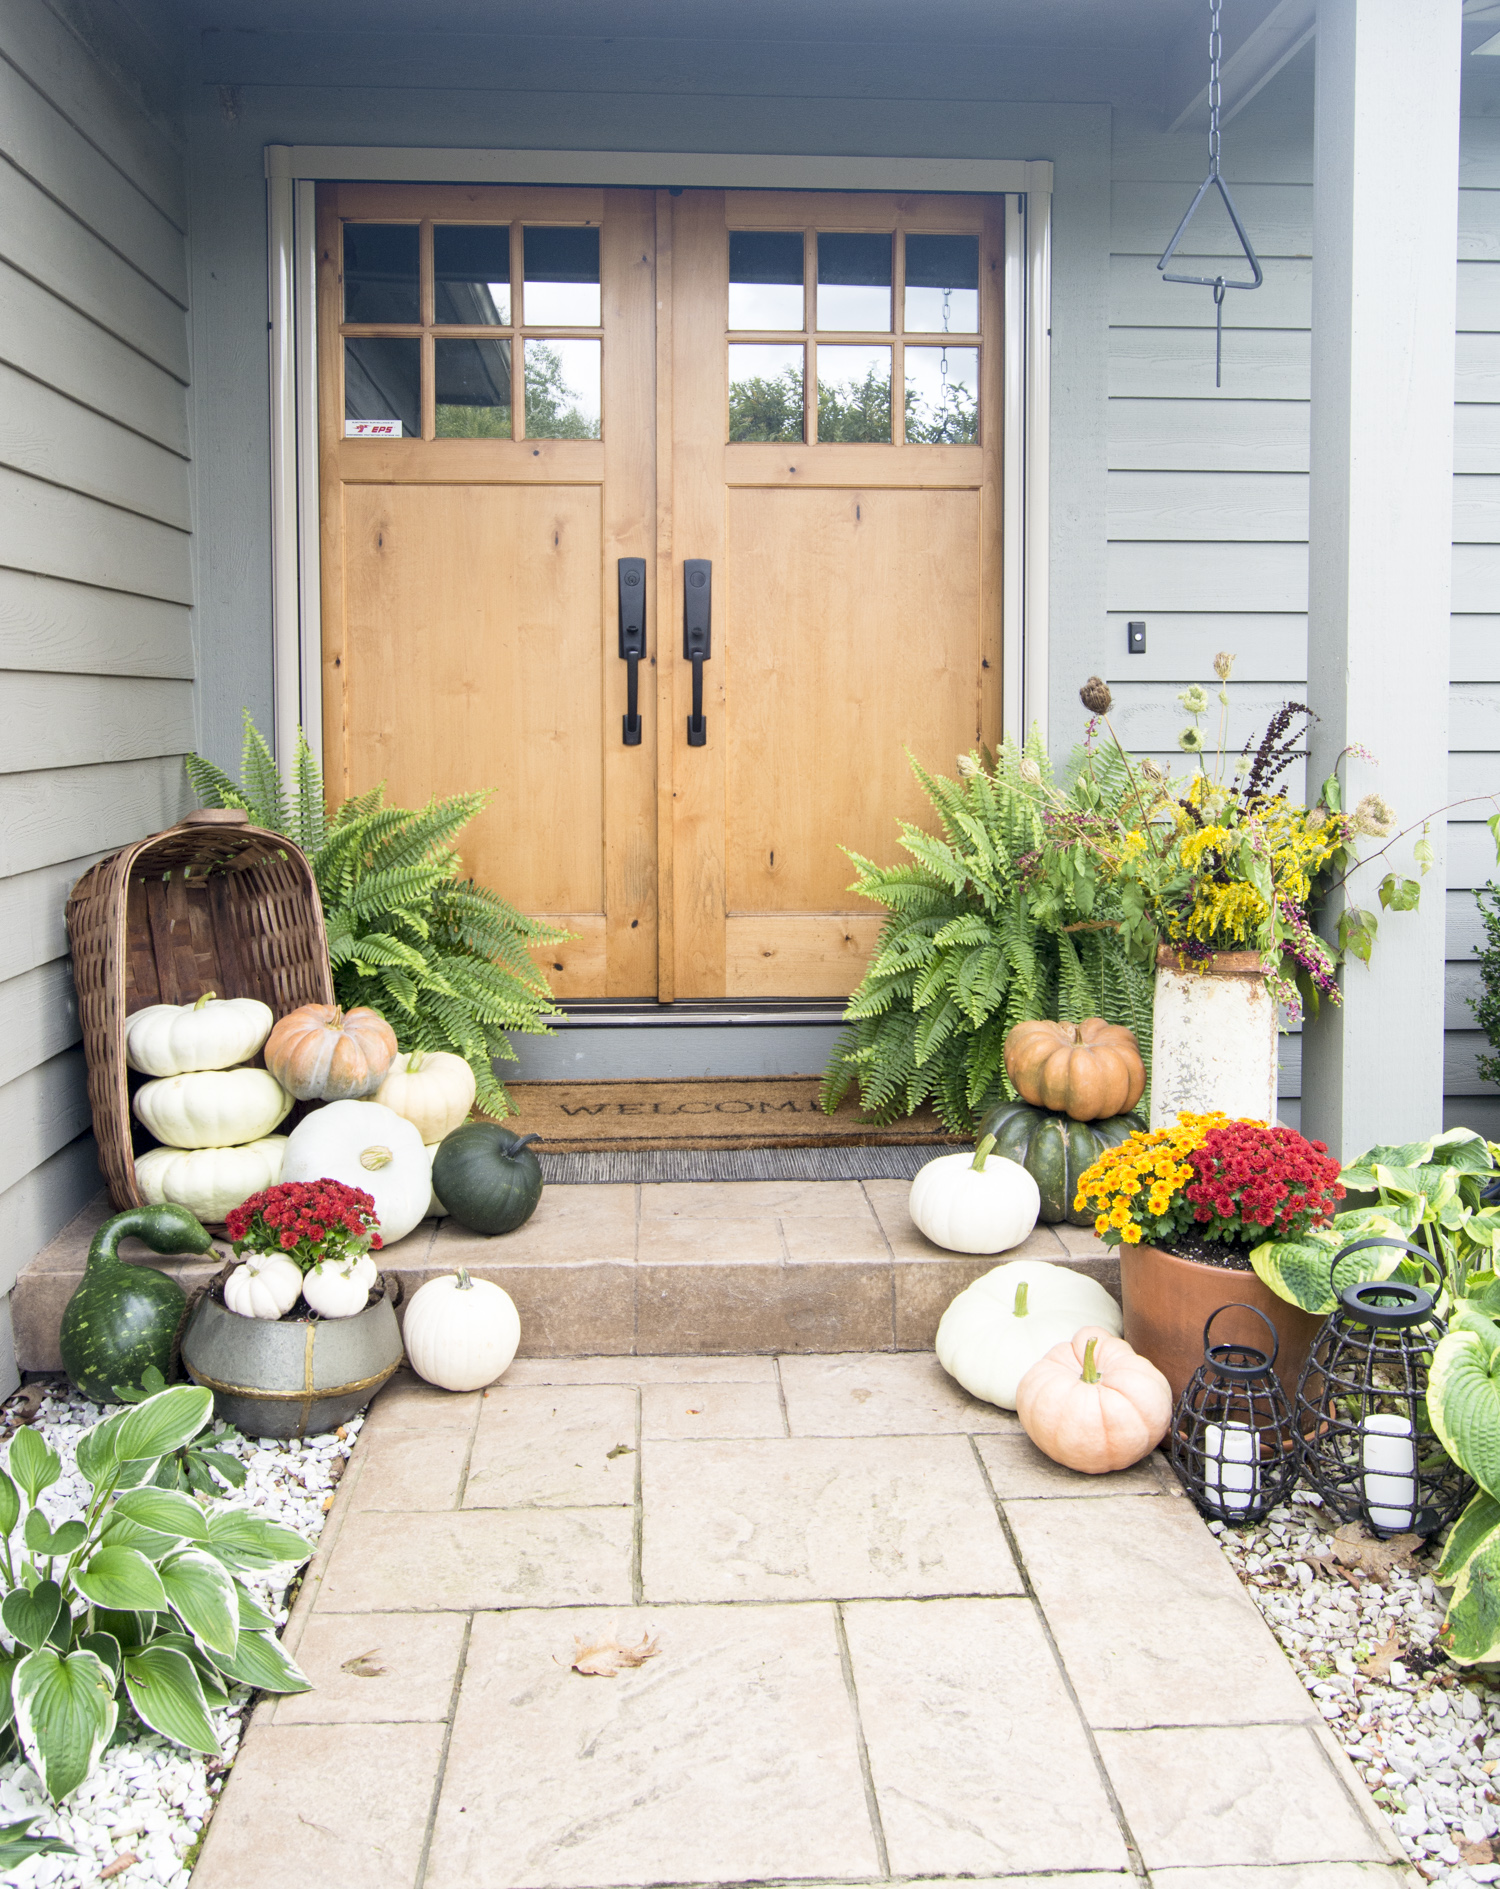 Love the wood double front doors and the pile of pumpkins spilling out of baskets on this fall front porch kellyelko.com #frontporch #porchdecor #pumpkins #falldecor #fallporch